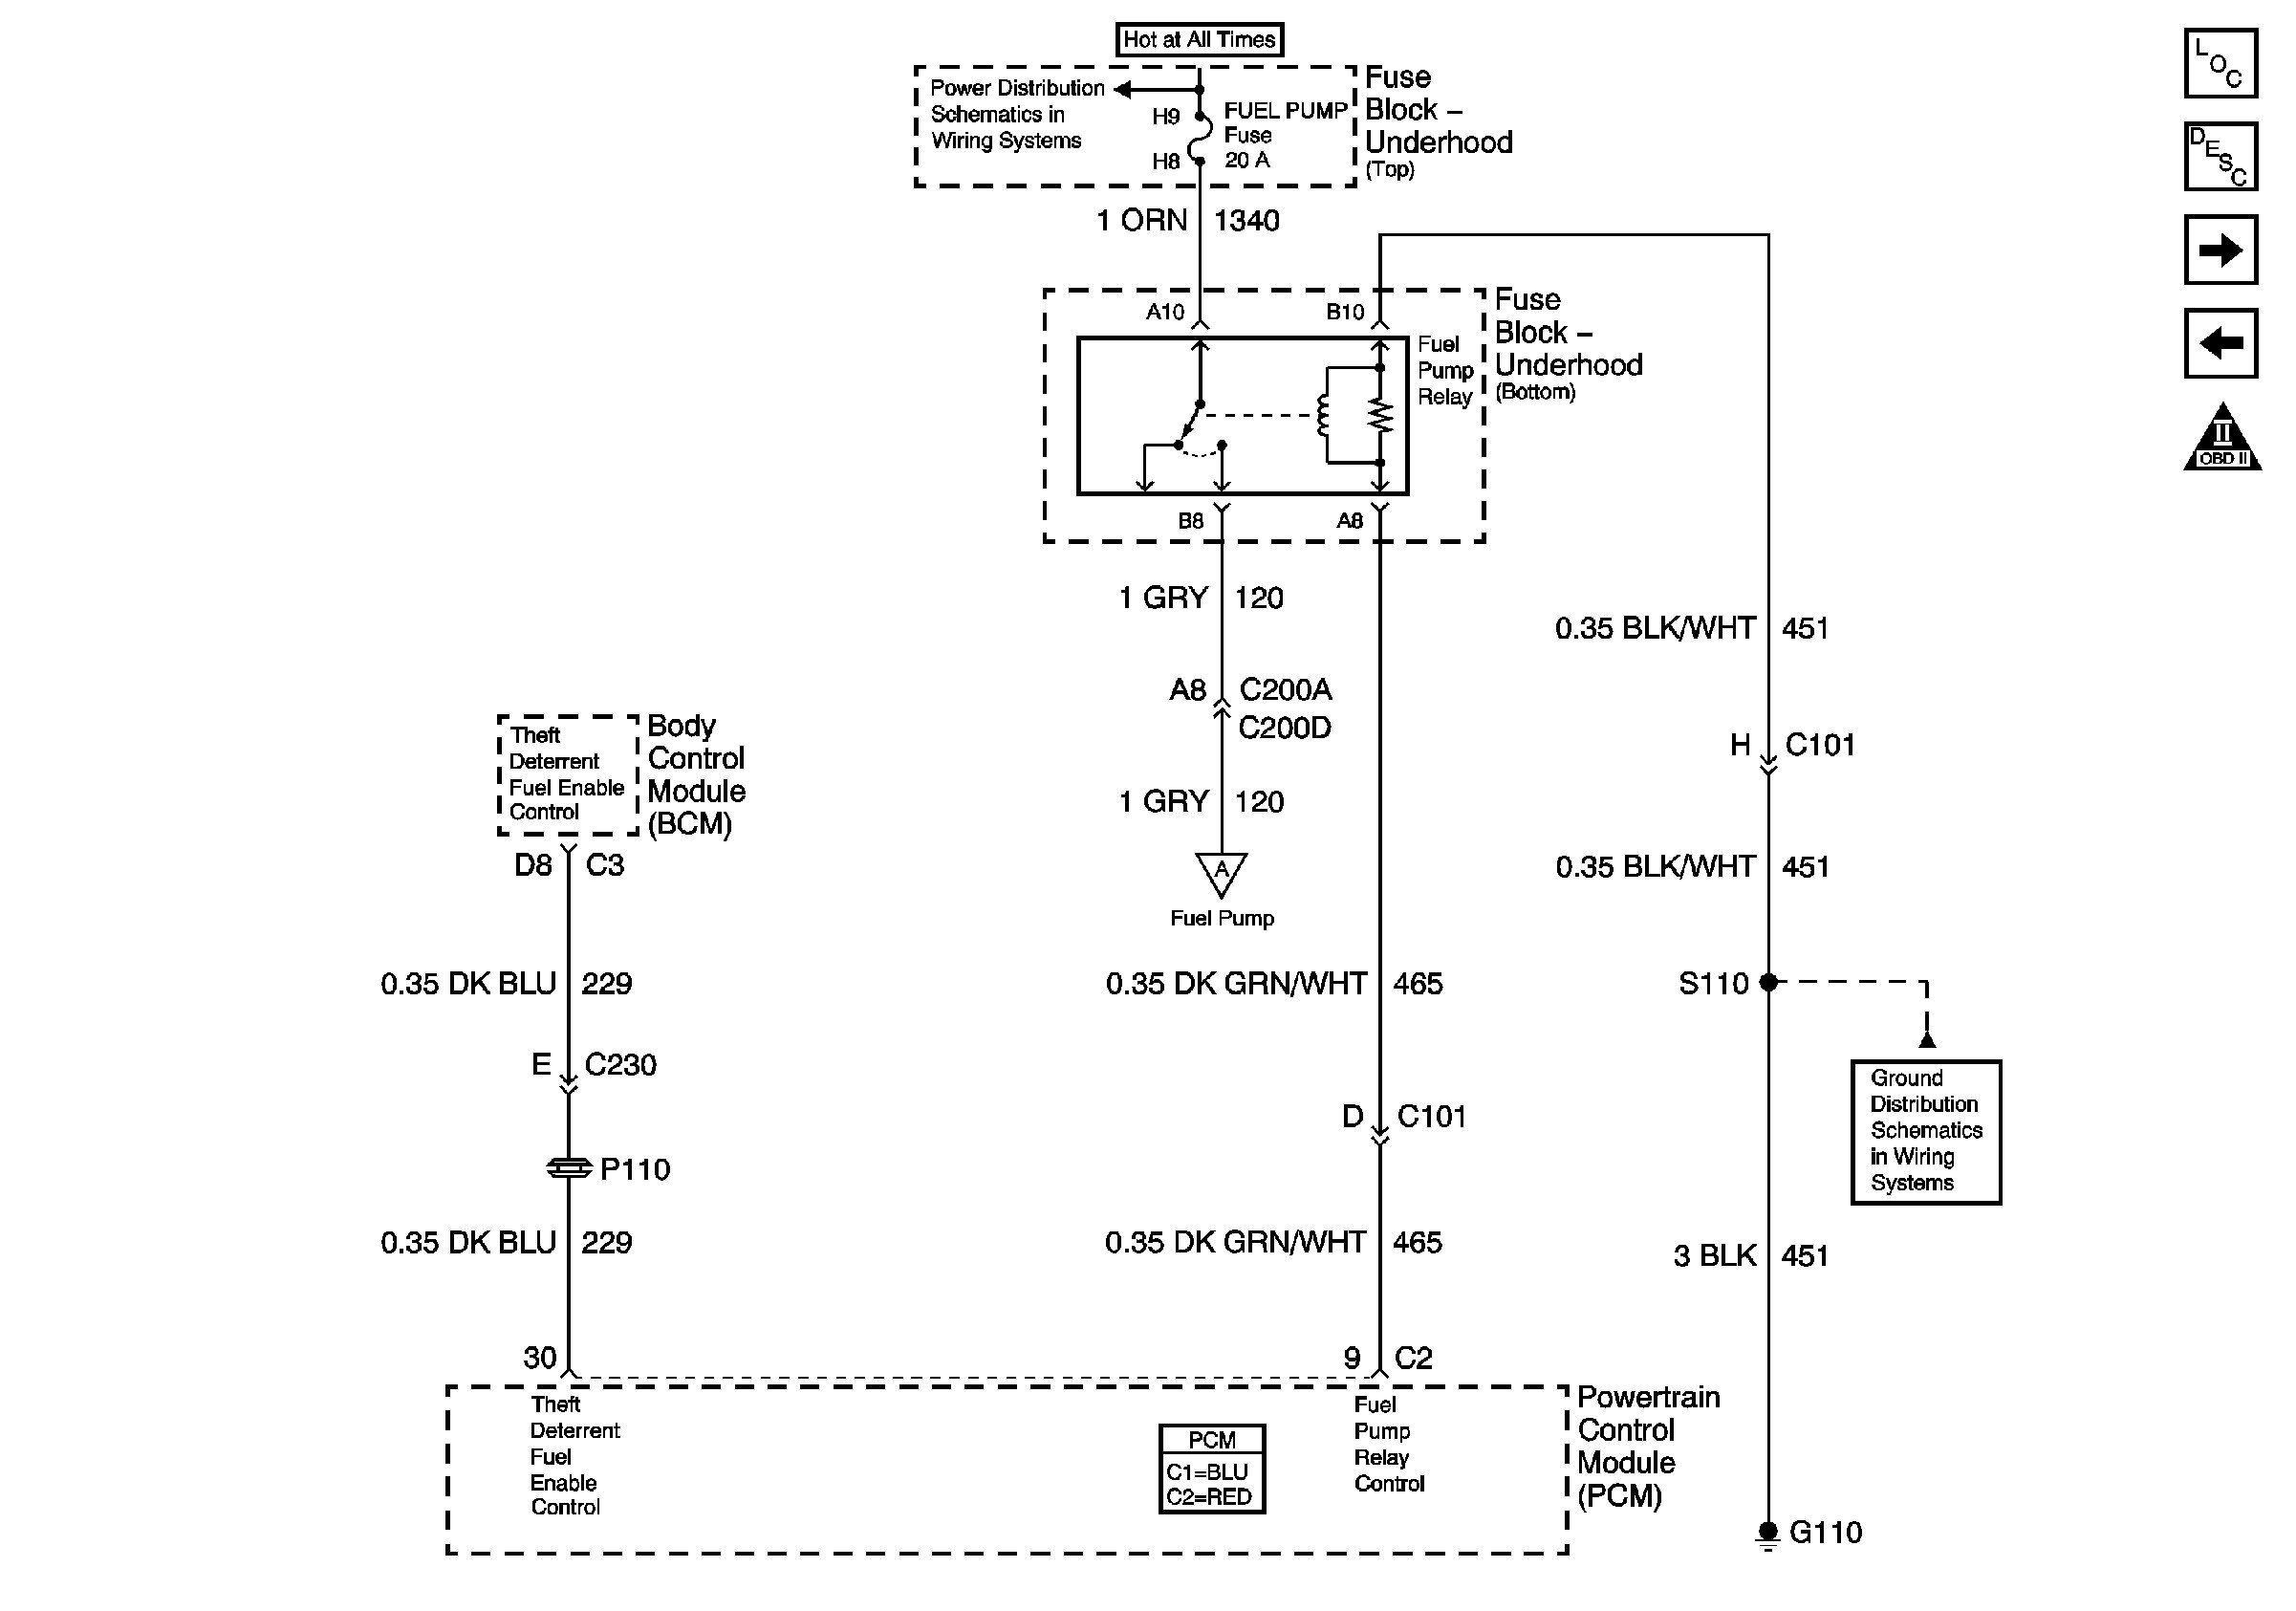 Voltmeter Wiring Diagram Mercruiser - Wiring Diagram Data Oreo - Mercruiser Ignition Wiring Diagram